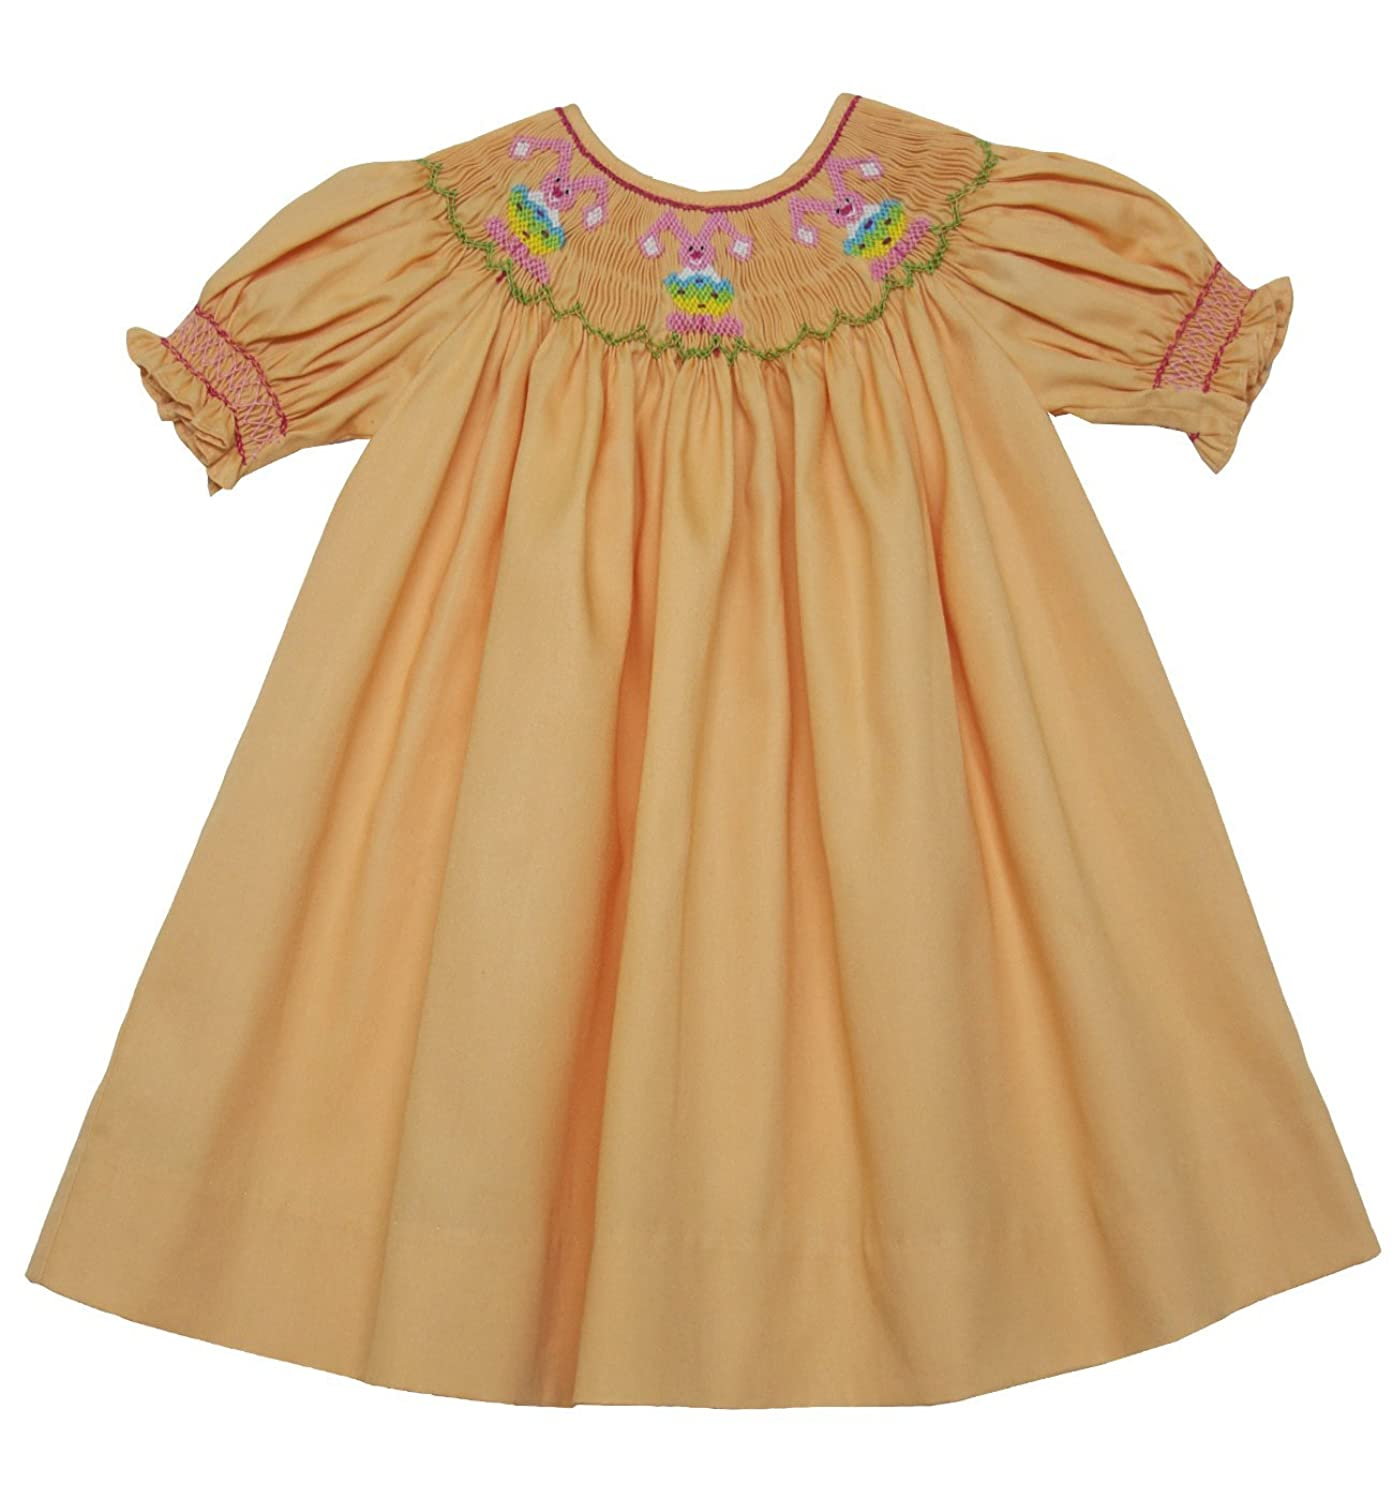 ec5318024 Sweet Smocked Easter Bunny with Eggs Dress on a beautiful pink check fabric  with white ric-rac on the sleeves and collar. The length falls around the  knee.